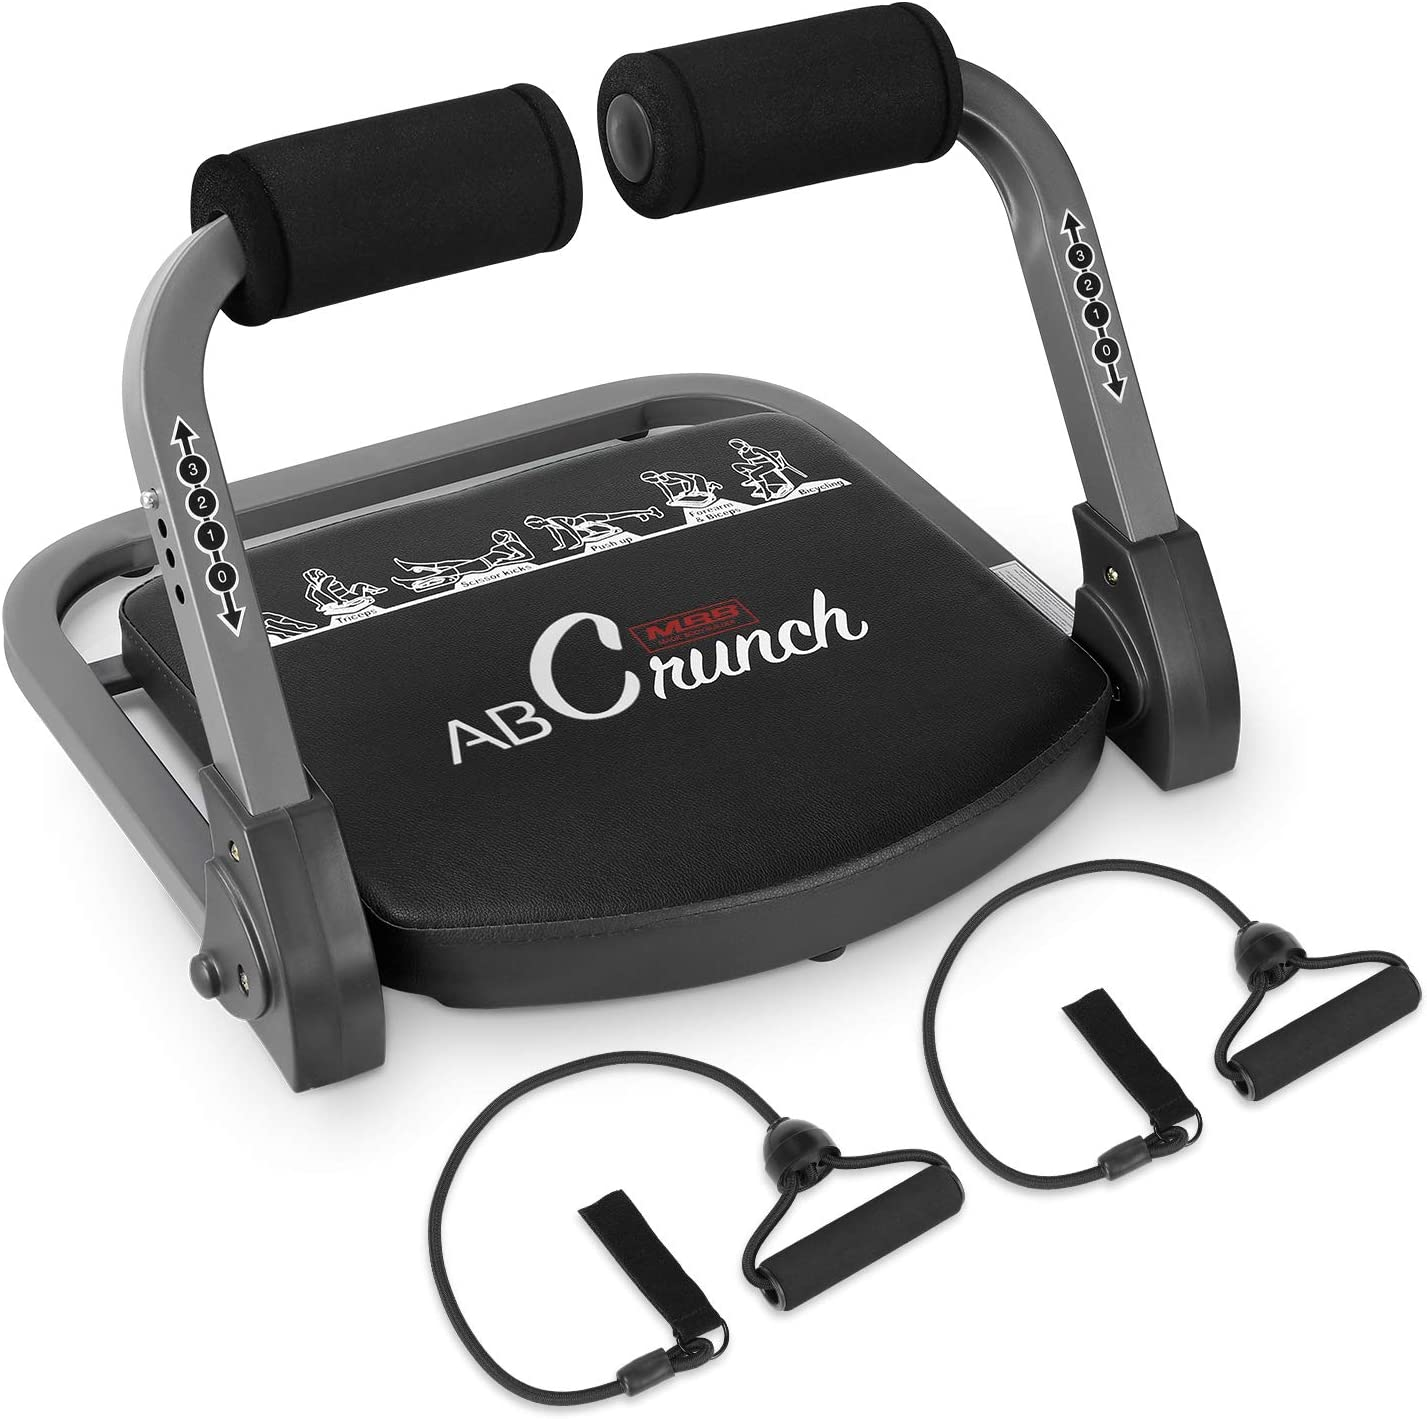 femor Core & Abs Exercise Trainer, Total Body Muscle Building Crunch Training Machine, Home Gym Fitness Equipment for Strength Training with Resistance Bands & Workout Guide